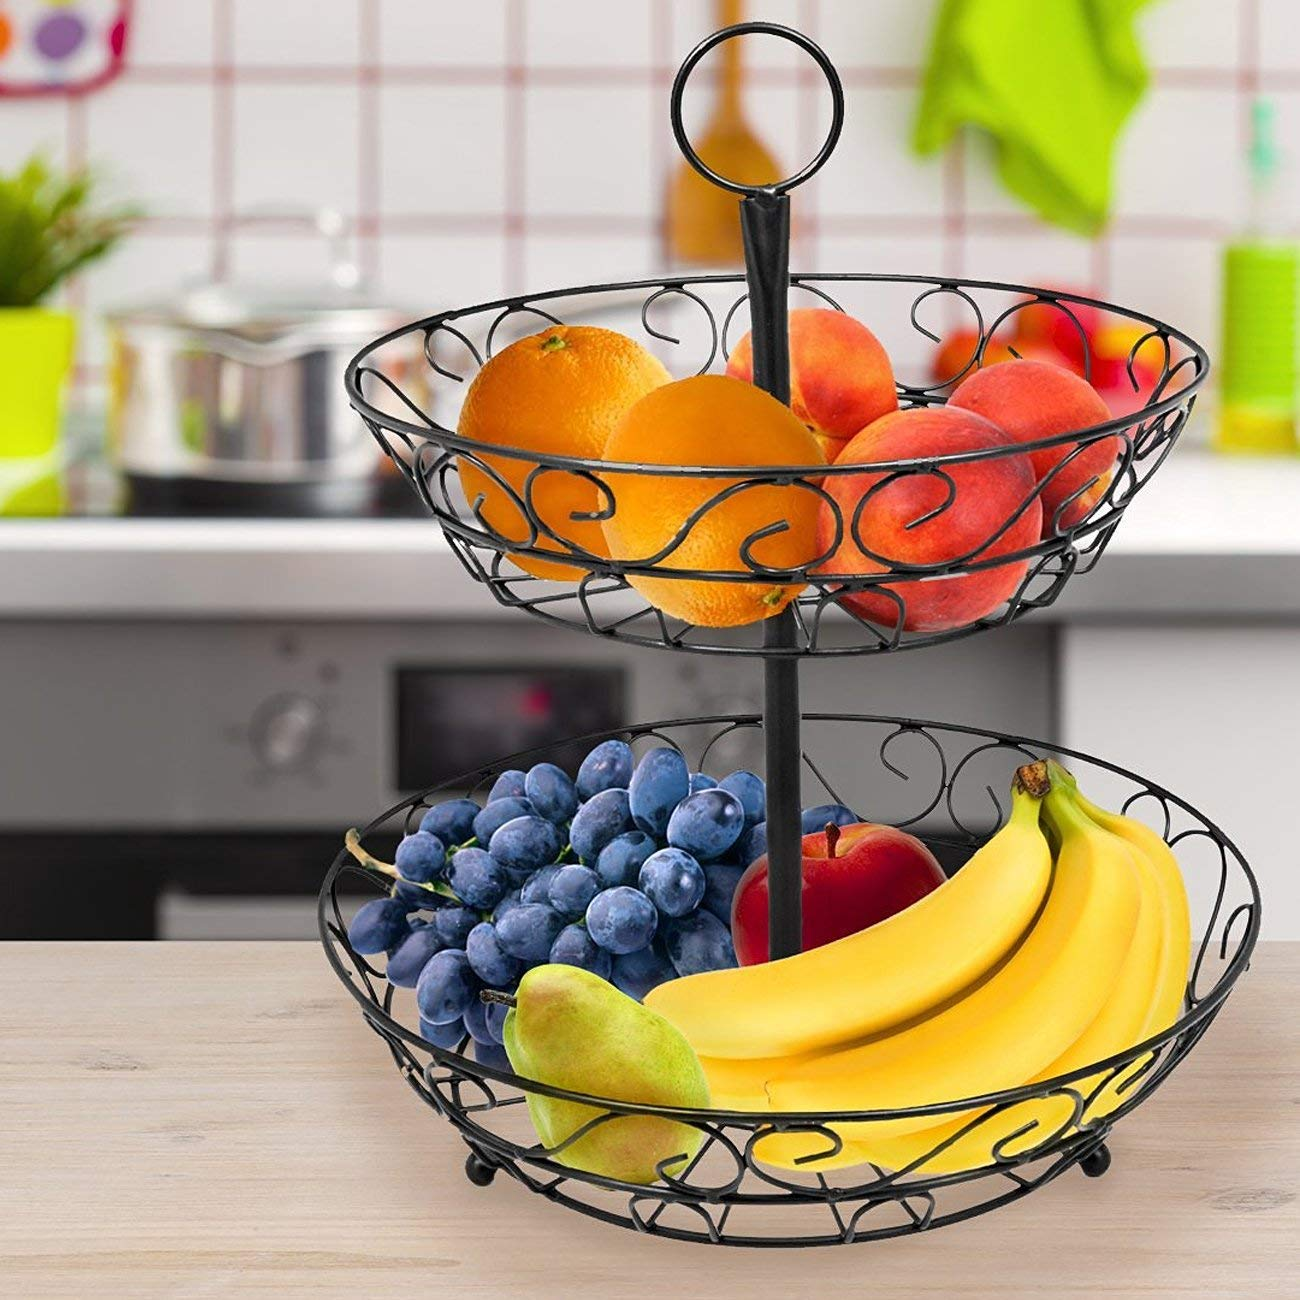 2 Tier Countertop Fruit Basket Holder Decorative Bowl Stand Basket Perfect for Fruit Vegetables Snacks Household Items in Storage Baskets from Home Garden